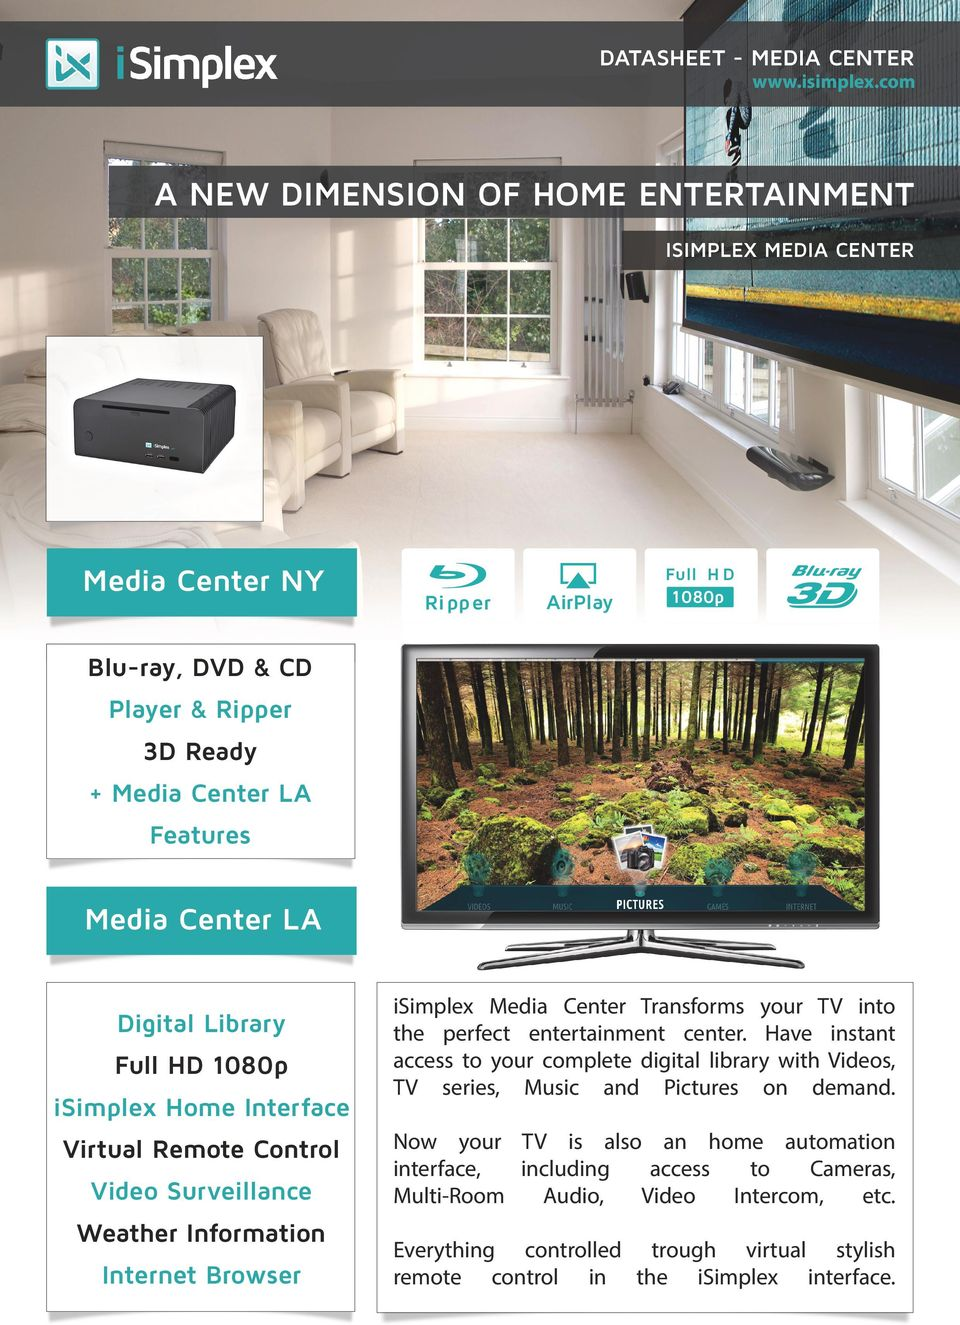 Transforms your TV into the perfect entertainment center. Have instant access to your complete digital library with Videos, TV series, Music and Pictures on demand.